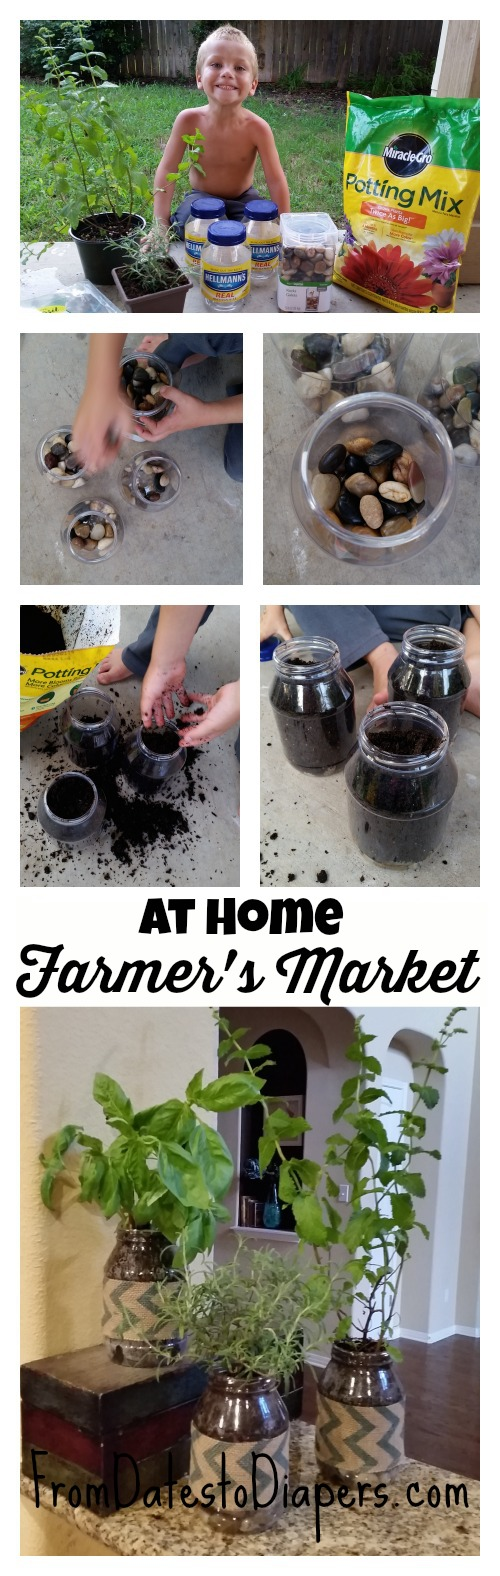 how to make your own farmer's market